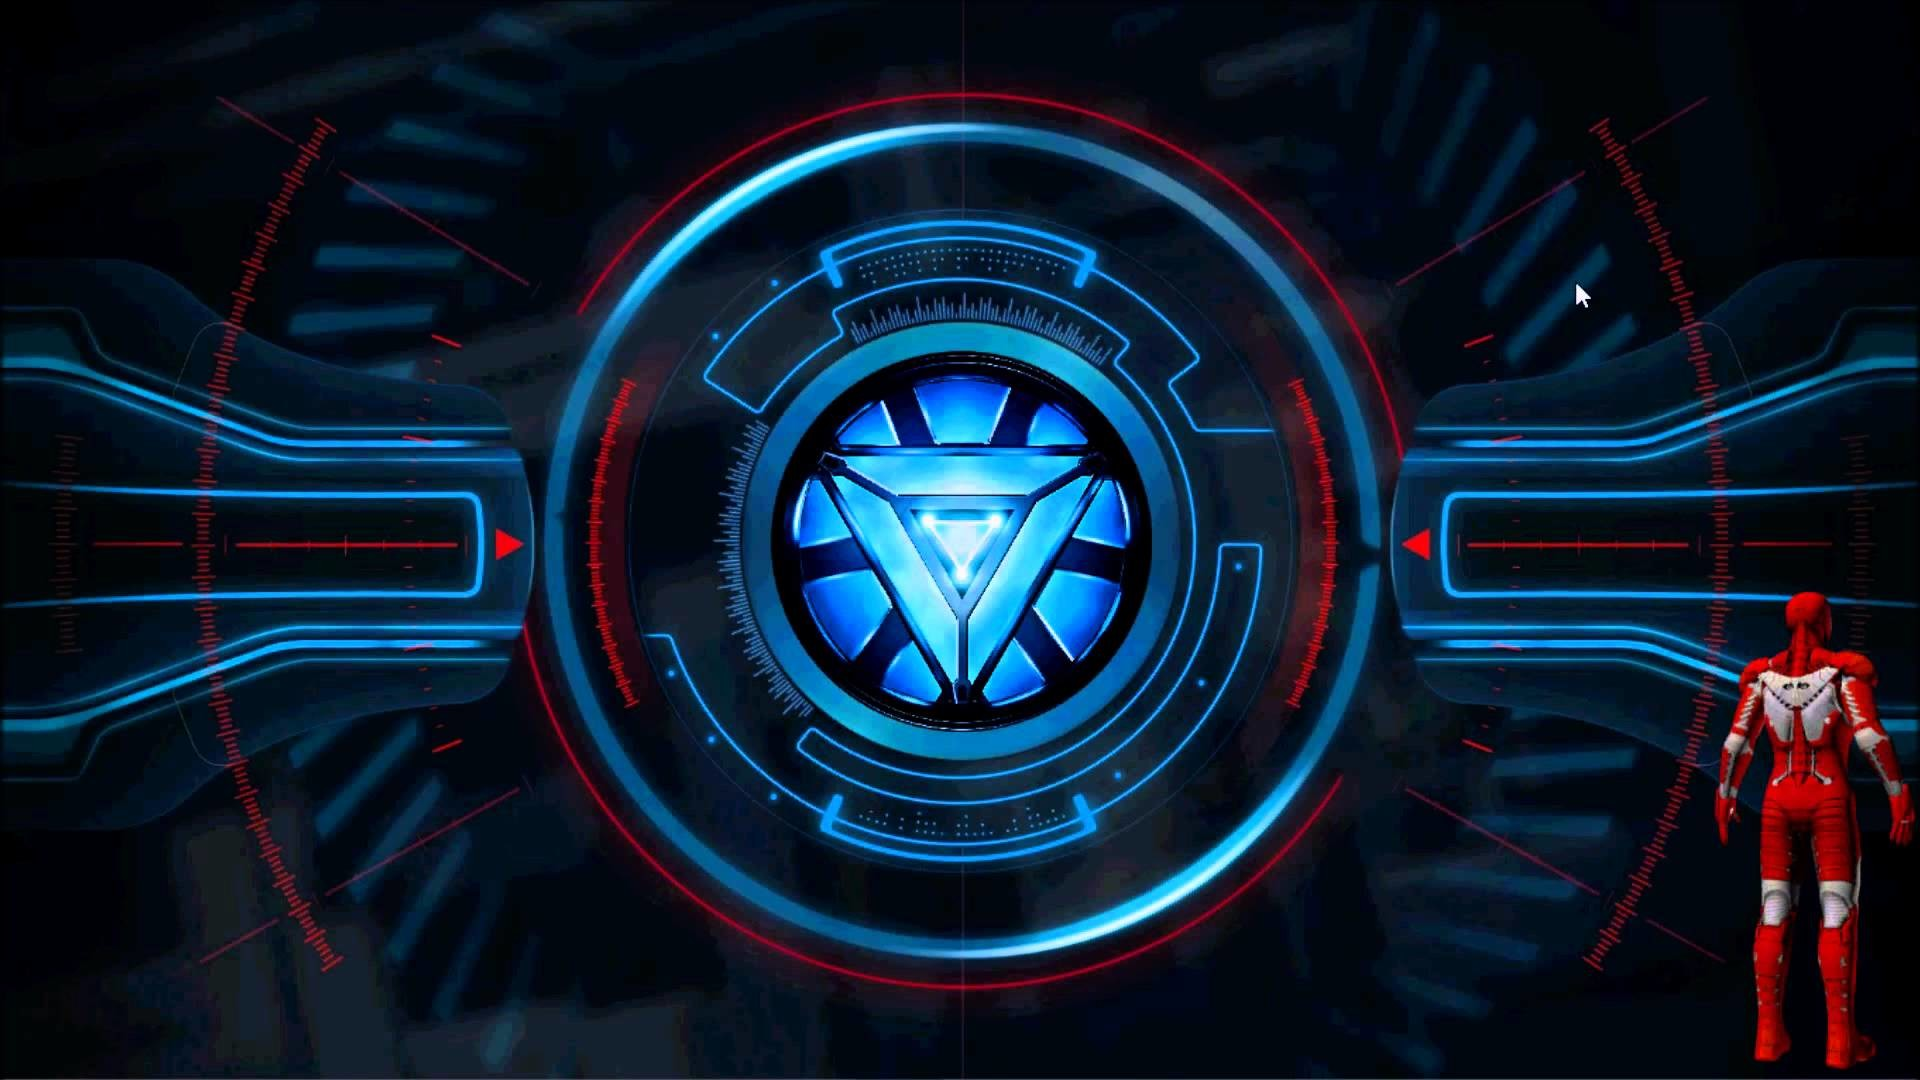 1920x1080 Animated Arc Reactor Rainmeter Skin - YouTube | 1920 x 1080 jpeg 145kB